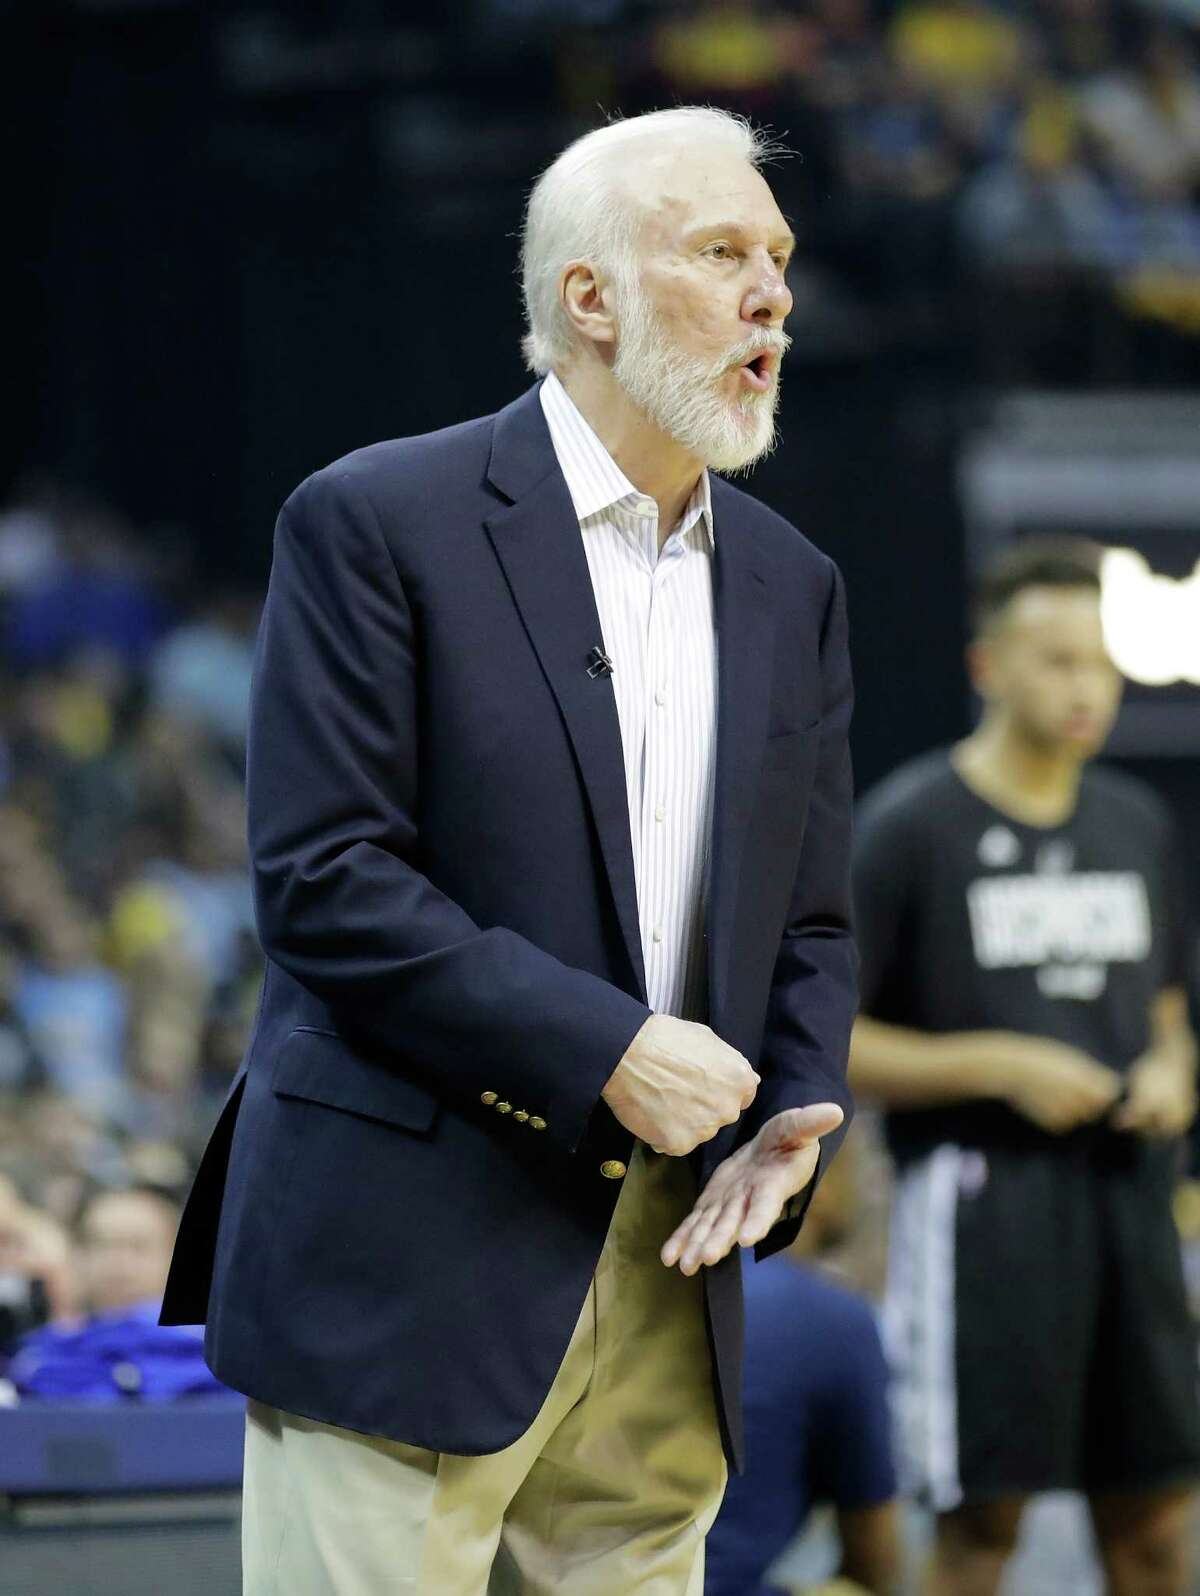 MEMPHIS, TN - APRIL 20: Greg Popovich the head coach of the San Antonio Spurs gives instructions to his team against the Memphis Grizzlies in game three of the Western Conference Quarterfinals during the 2017 NBA Playoffs at FedExForum on April 20, 2017 in Memphis, Tennessee. NOTE TO USER: User expressly acknowledges and agrees that, by downloading and or using this photograph, User is consenting to the terms and conditions of the Getty Images License Agreement